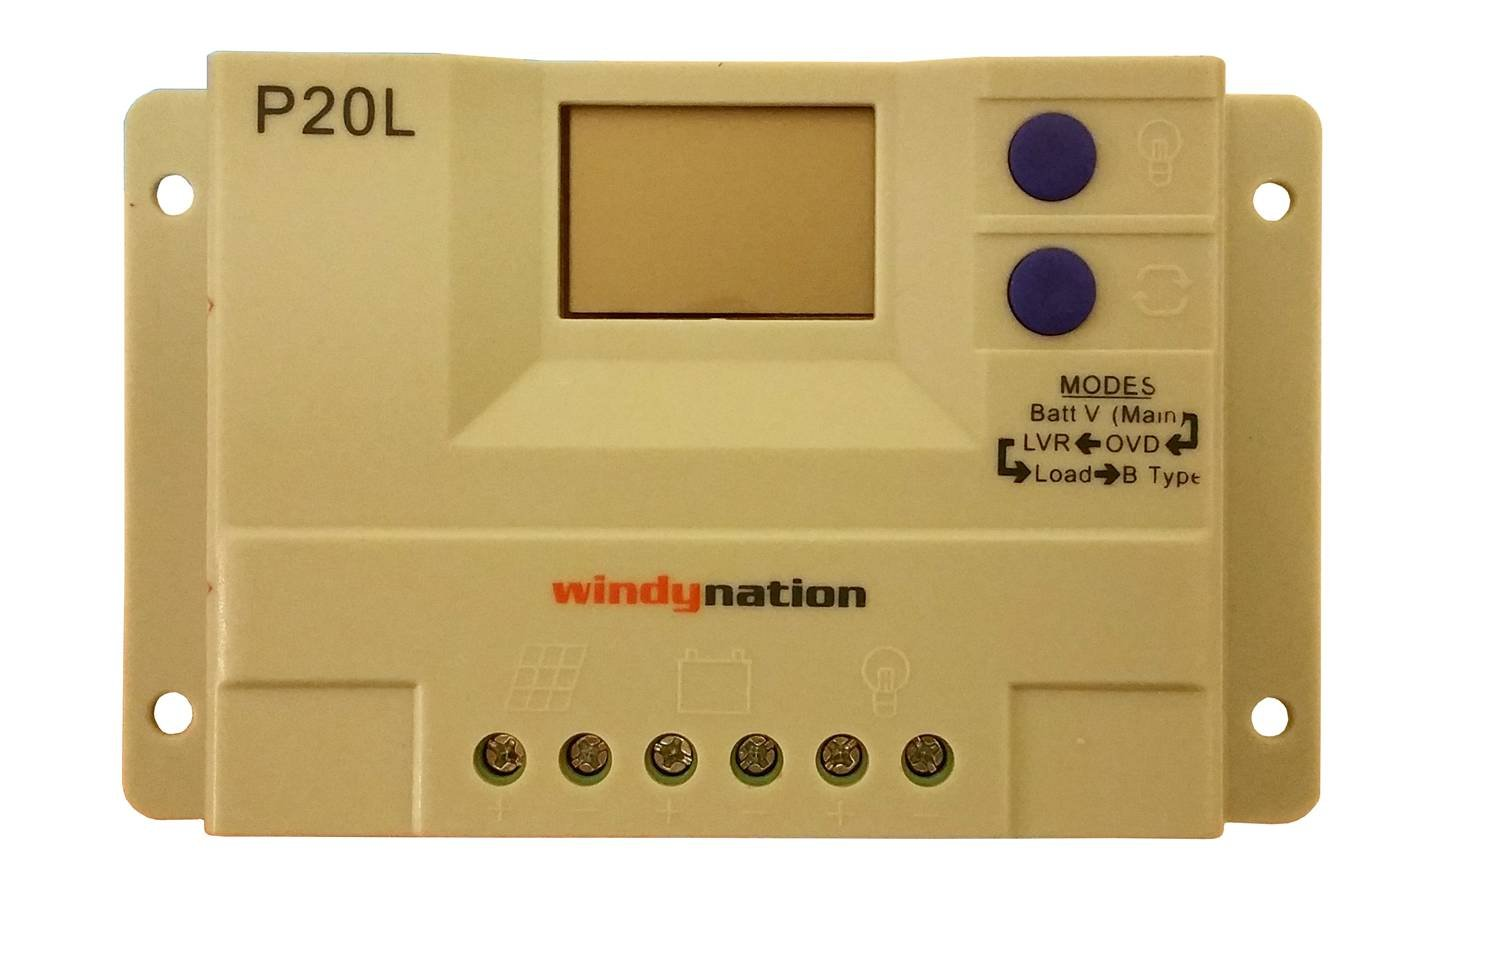 WindyNation P20L LCD 20A PWM Solar Panel Regulator Charge Controller with LCD Digital Display and User Adjustable Settings